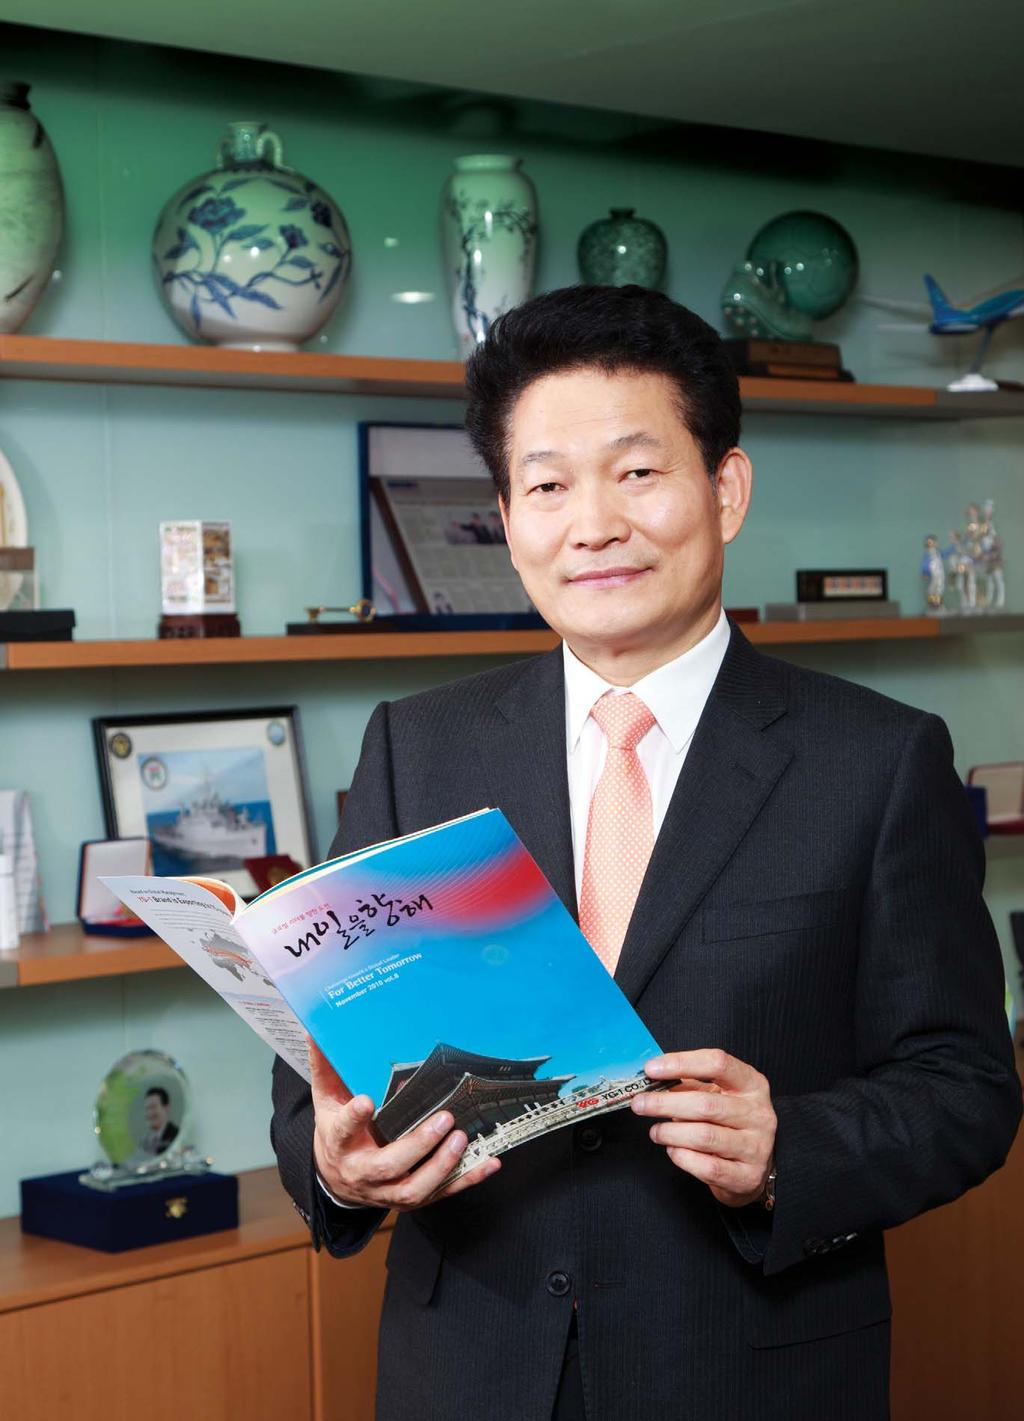 In the same way, Mayor Song has strong convictions about the responsibilities that go with leadership: To make Incheon a good place to conduct business, it is important to provide legal and